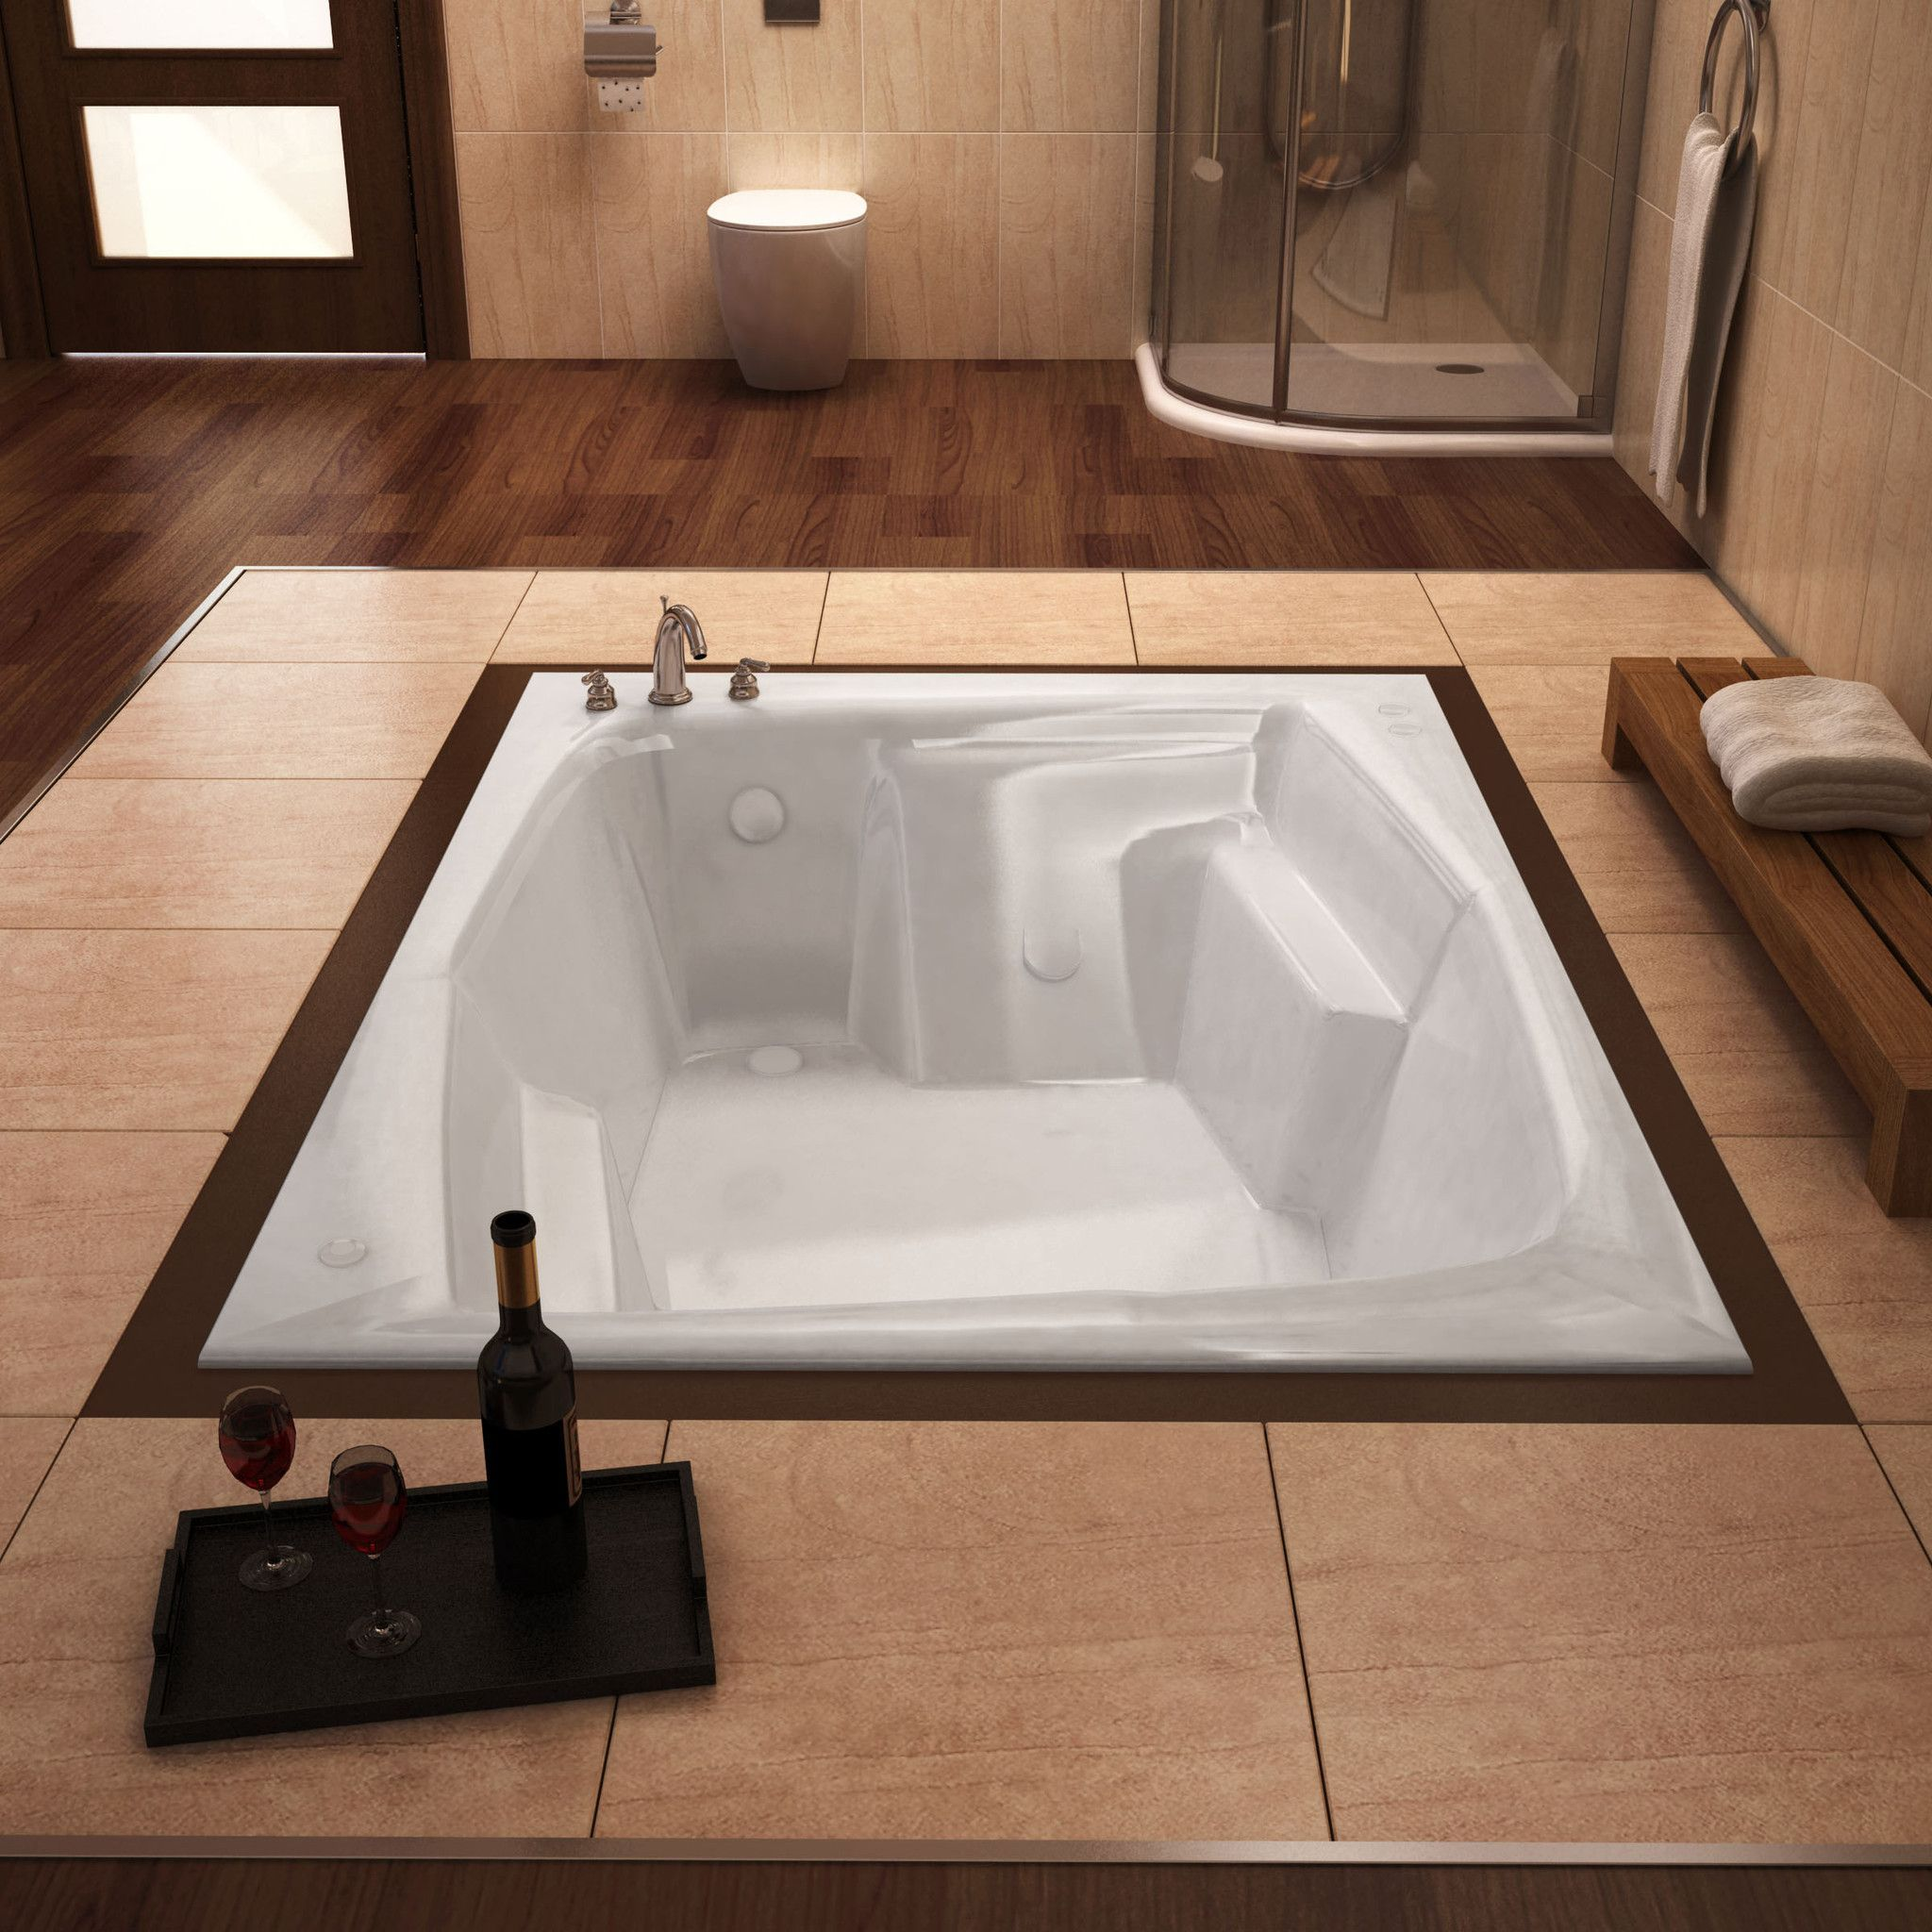 Atlantis Whirlpools 5472C Caresse 54 x 72 Rectangular Soaking ...